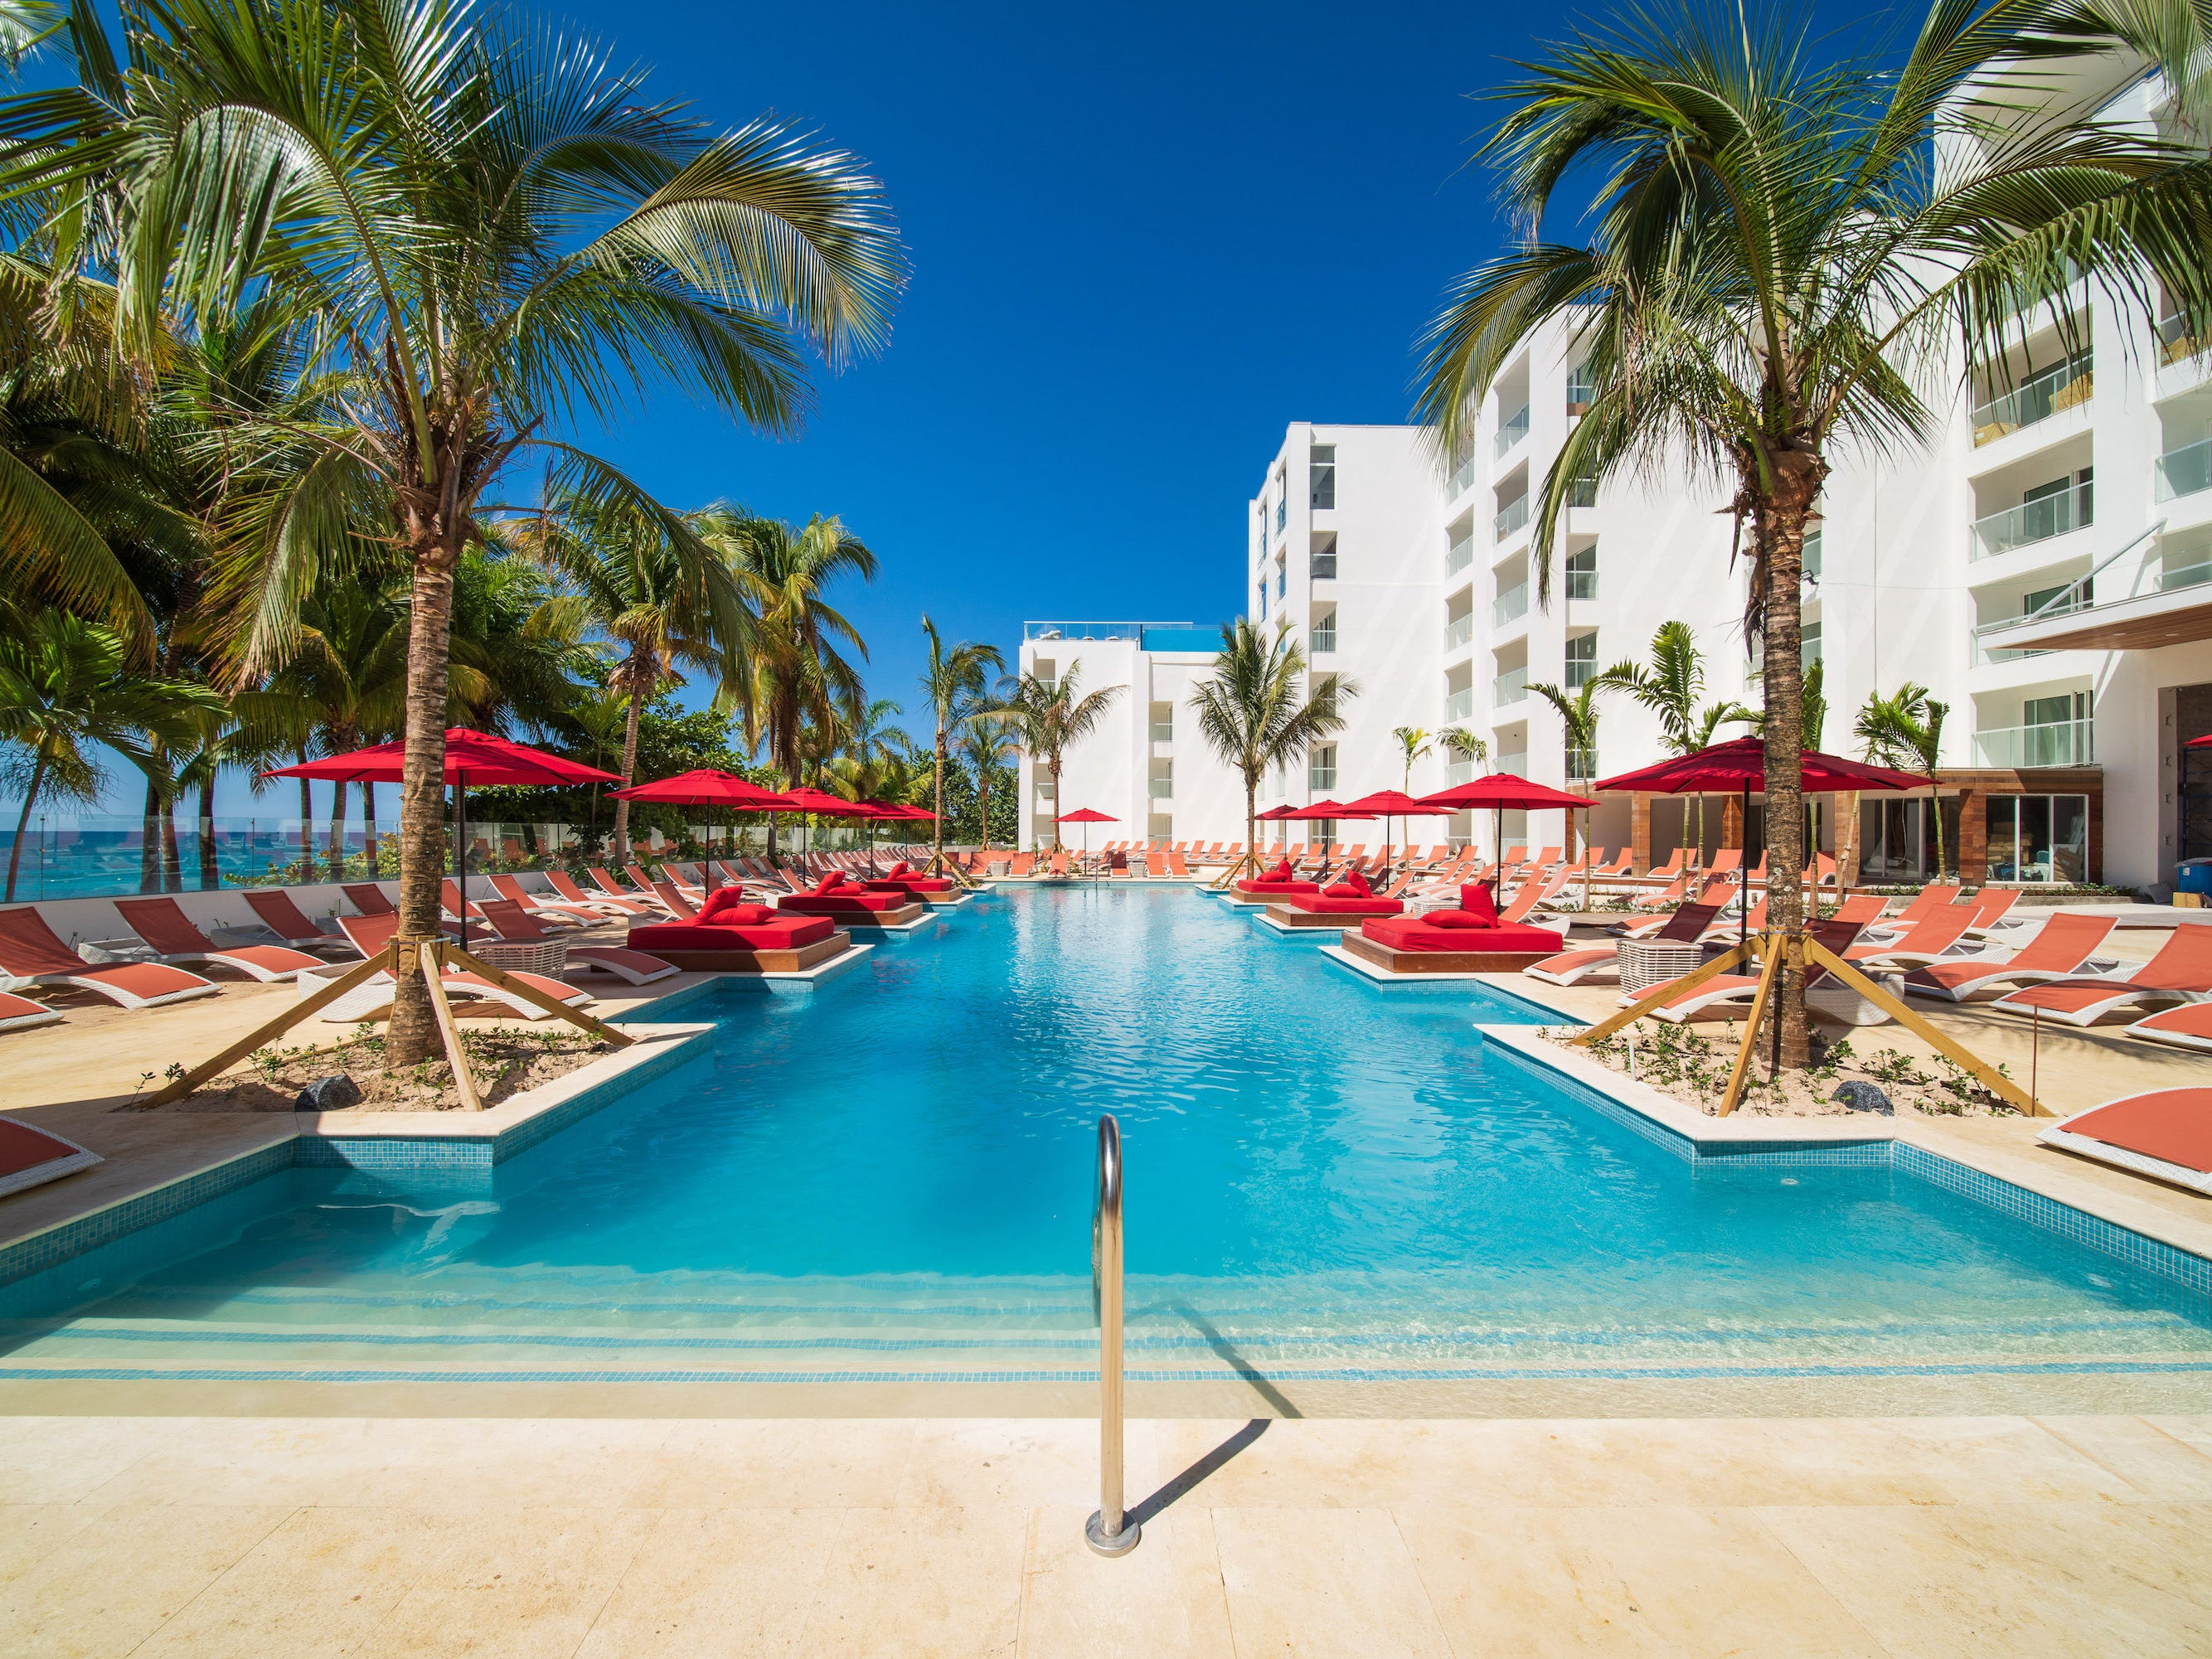 The S Hotel Jamaica's beachfront main pool with swim-out cabanas is pretty in blues and reds.